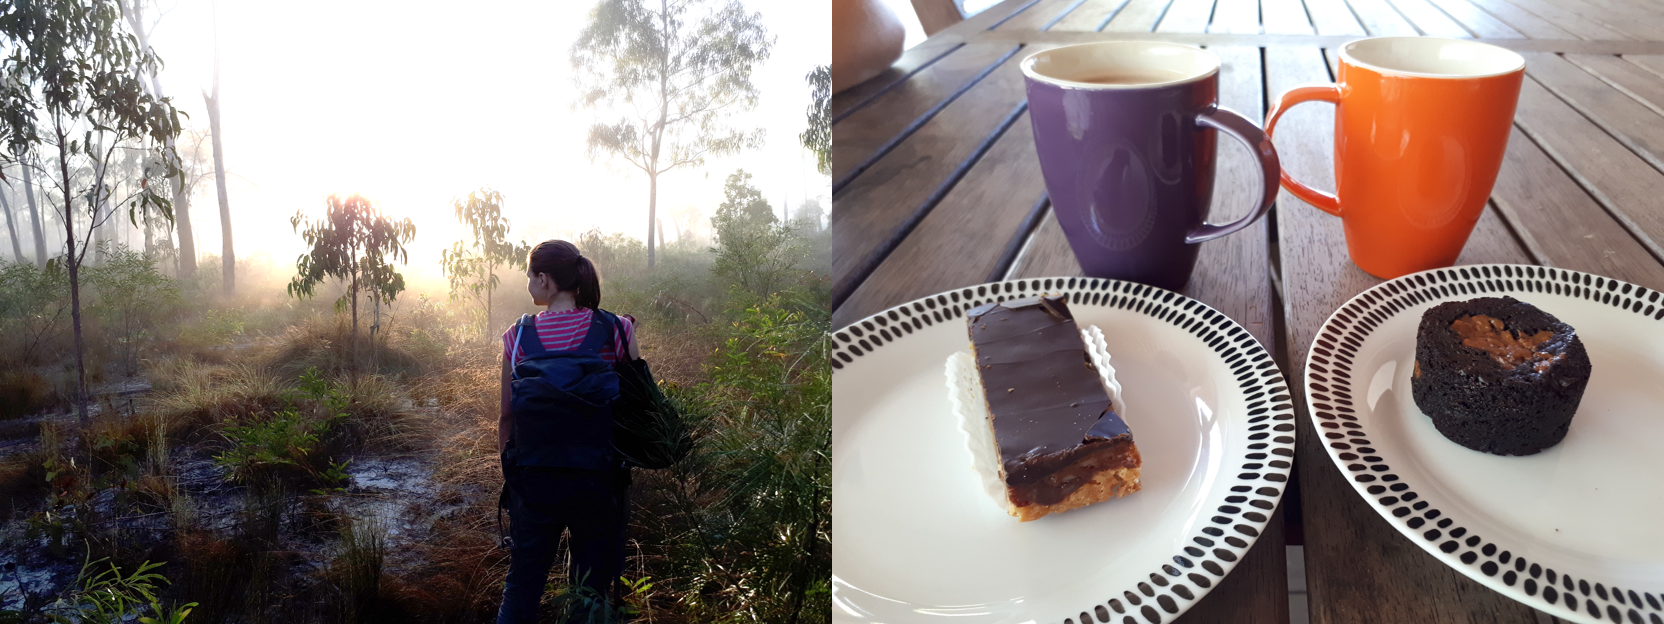 Backpacks loaded and an early start to beat the heat (left) and celebratory bakery treats to keep energy up from Grooty Eylandt Bakery (right).